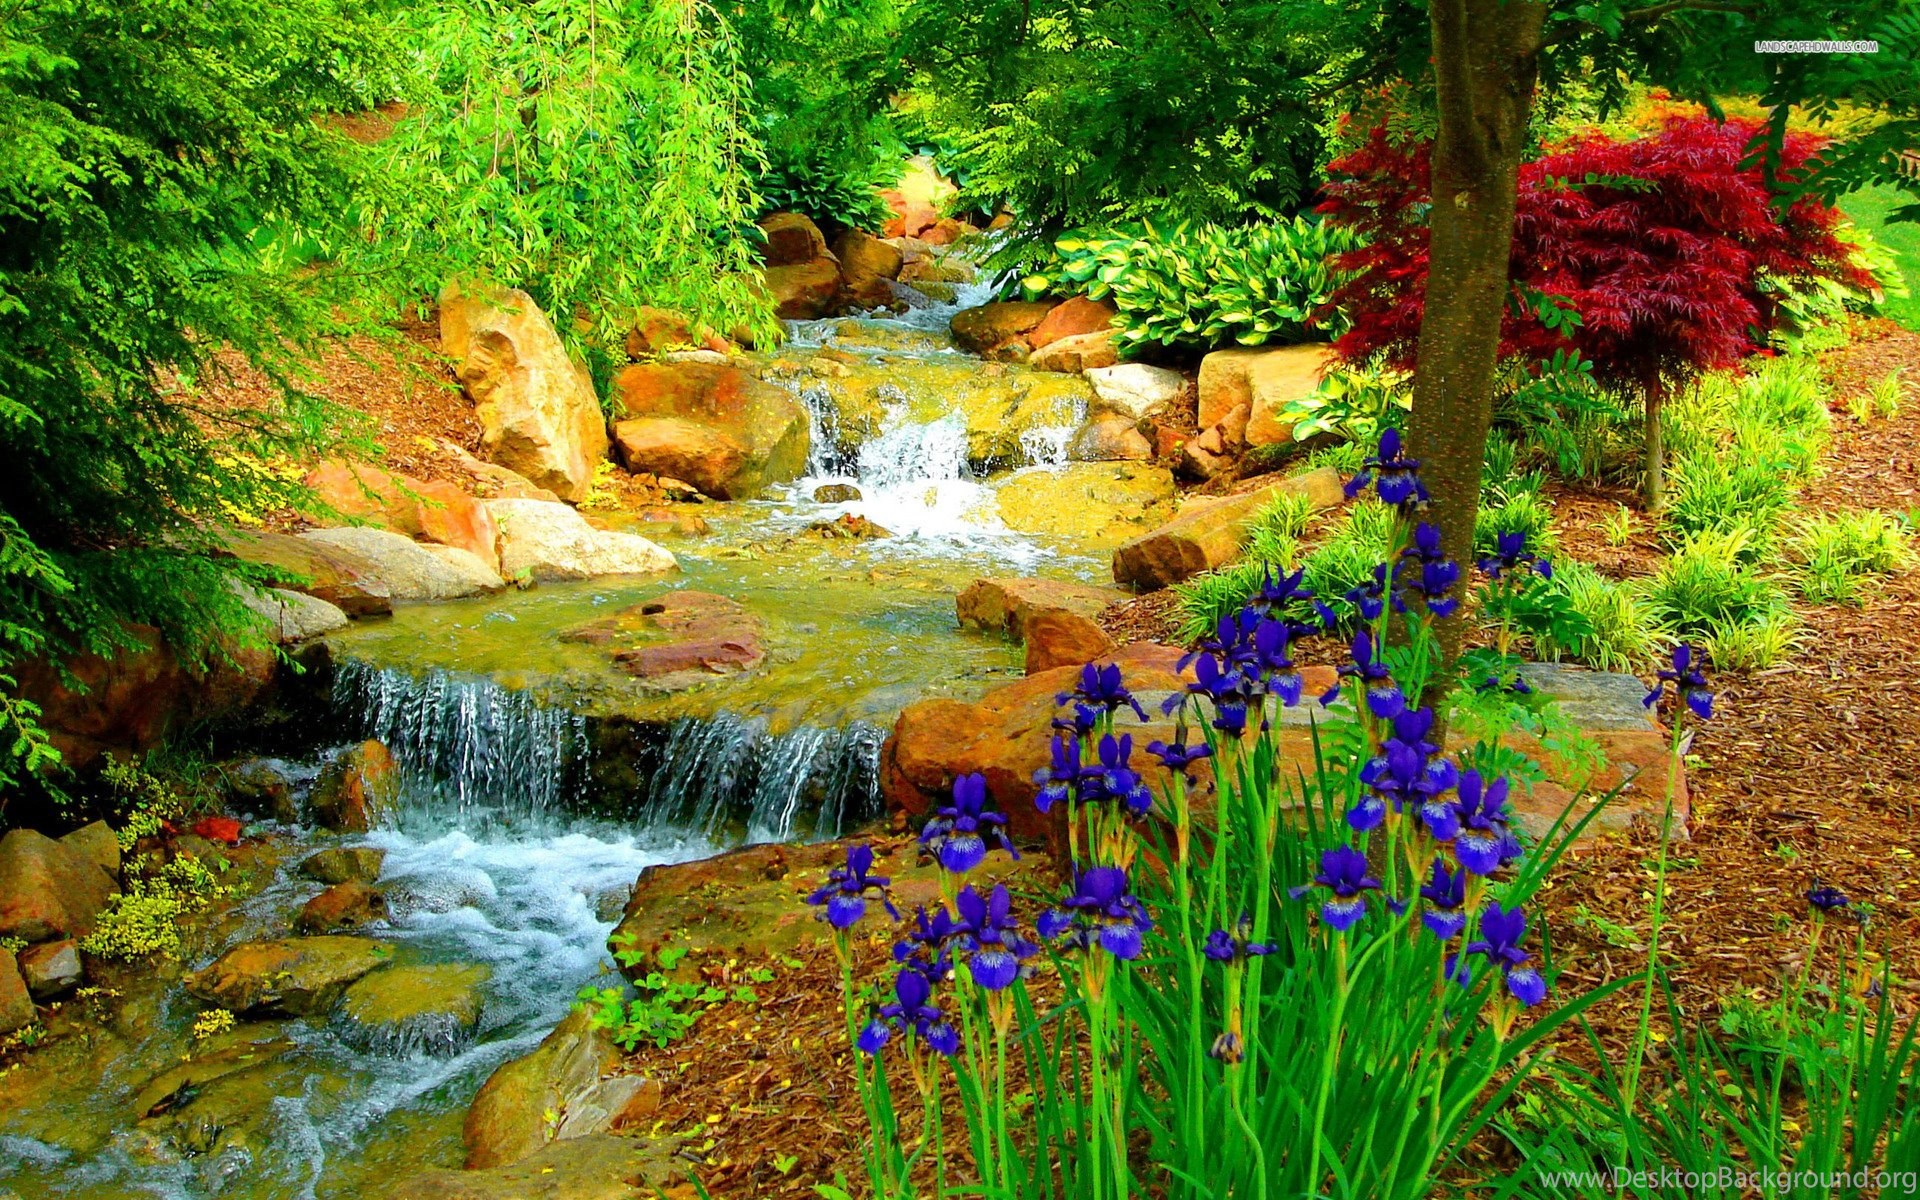 Beautiful Flower Garden Wallpapers Gh7 Desktop Background